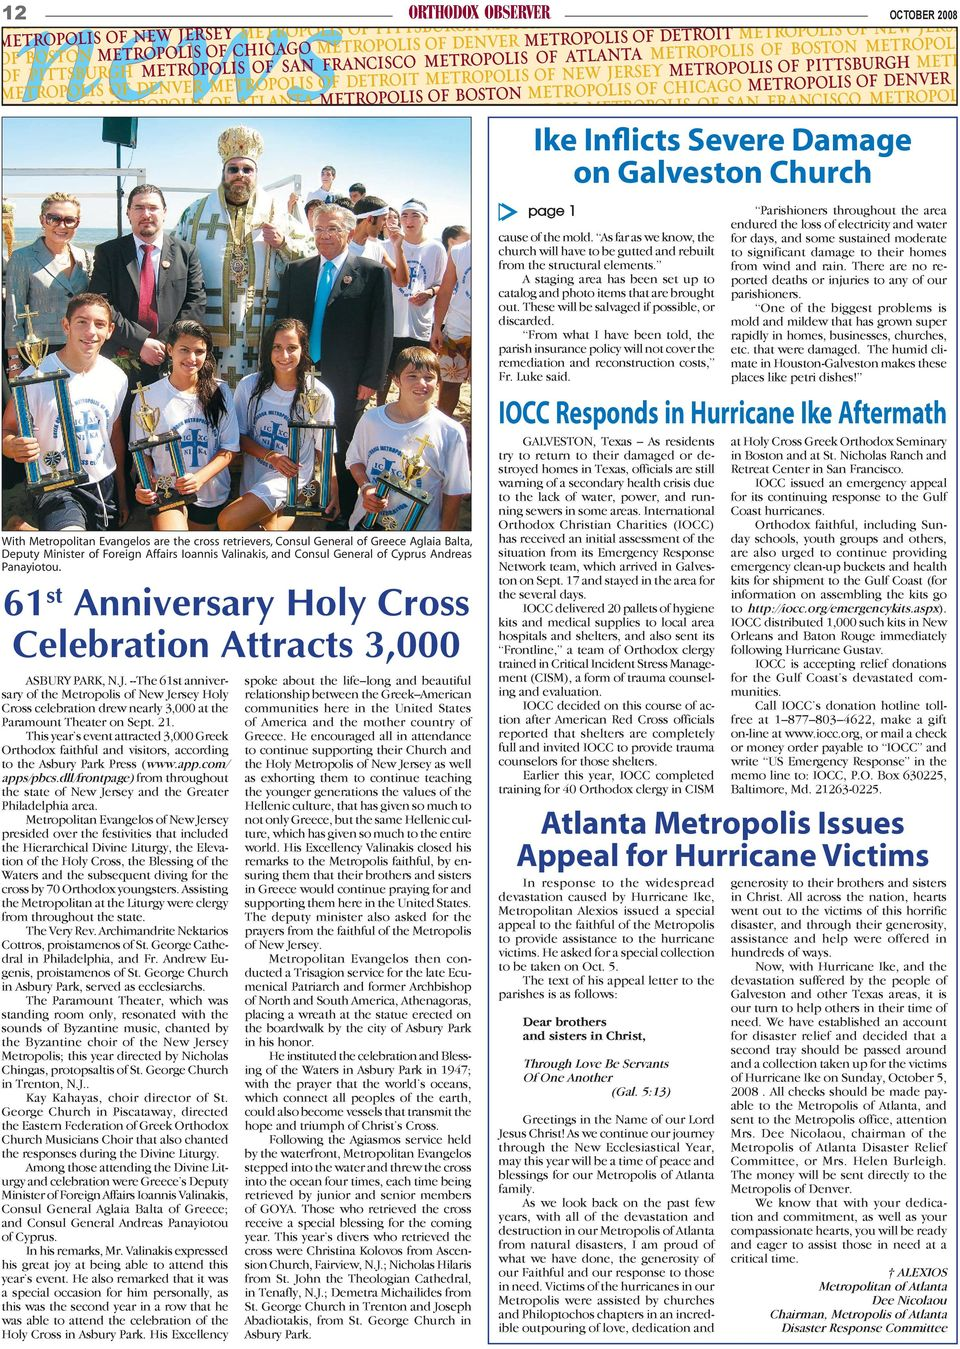 --The 61st anniversary of the Metropolis of New Jersey Holy Cross celebration drew nearly 3,000 at the Paramount Theater on Sept. 21.